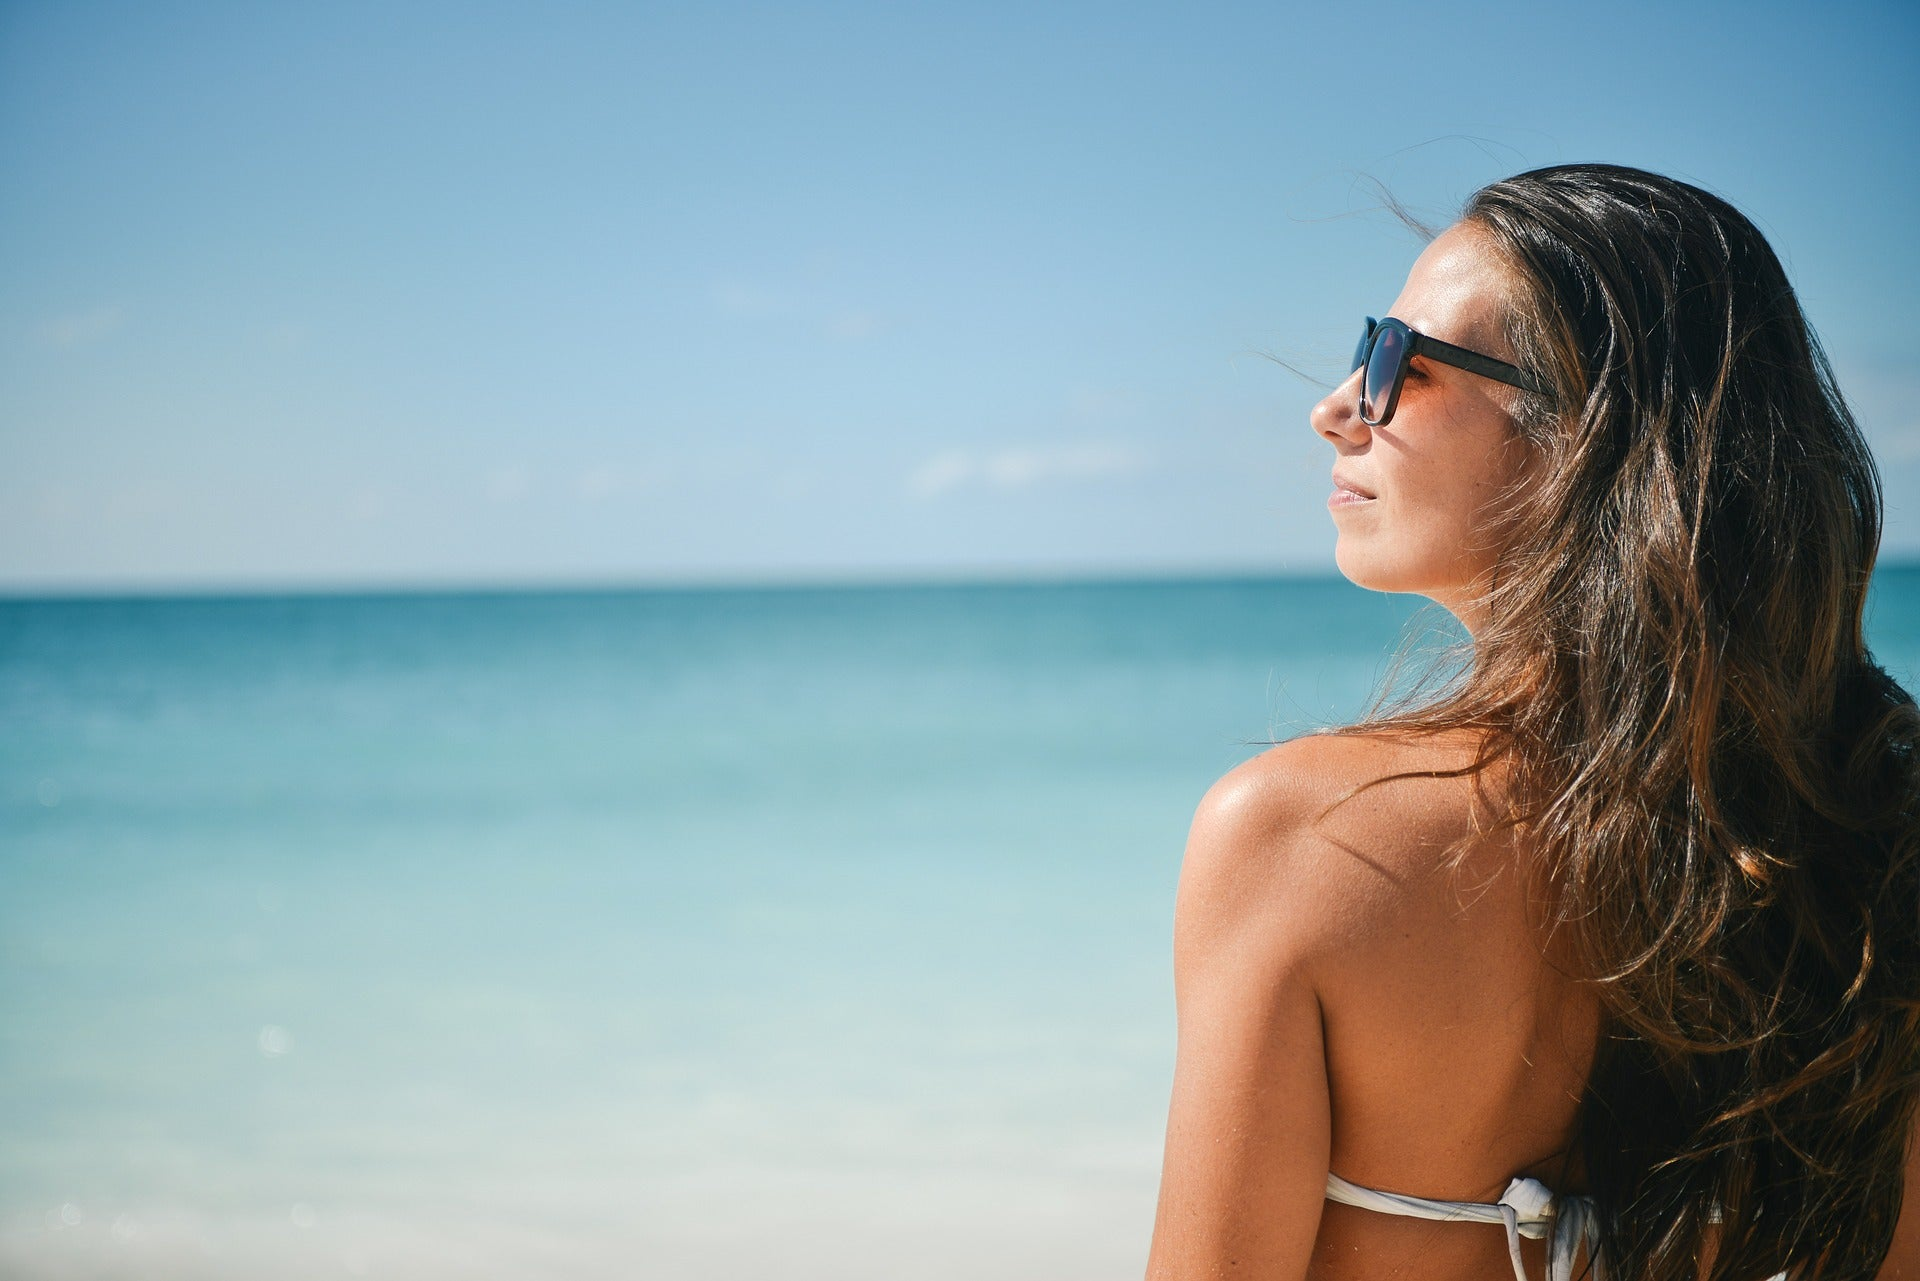 Think you know the basics about sun safety? Take this quiz